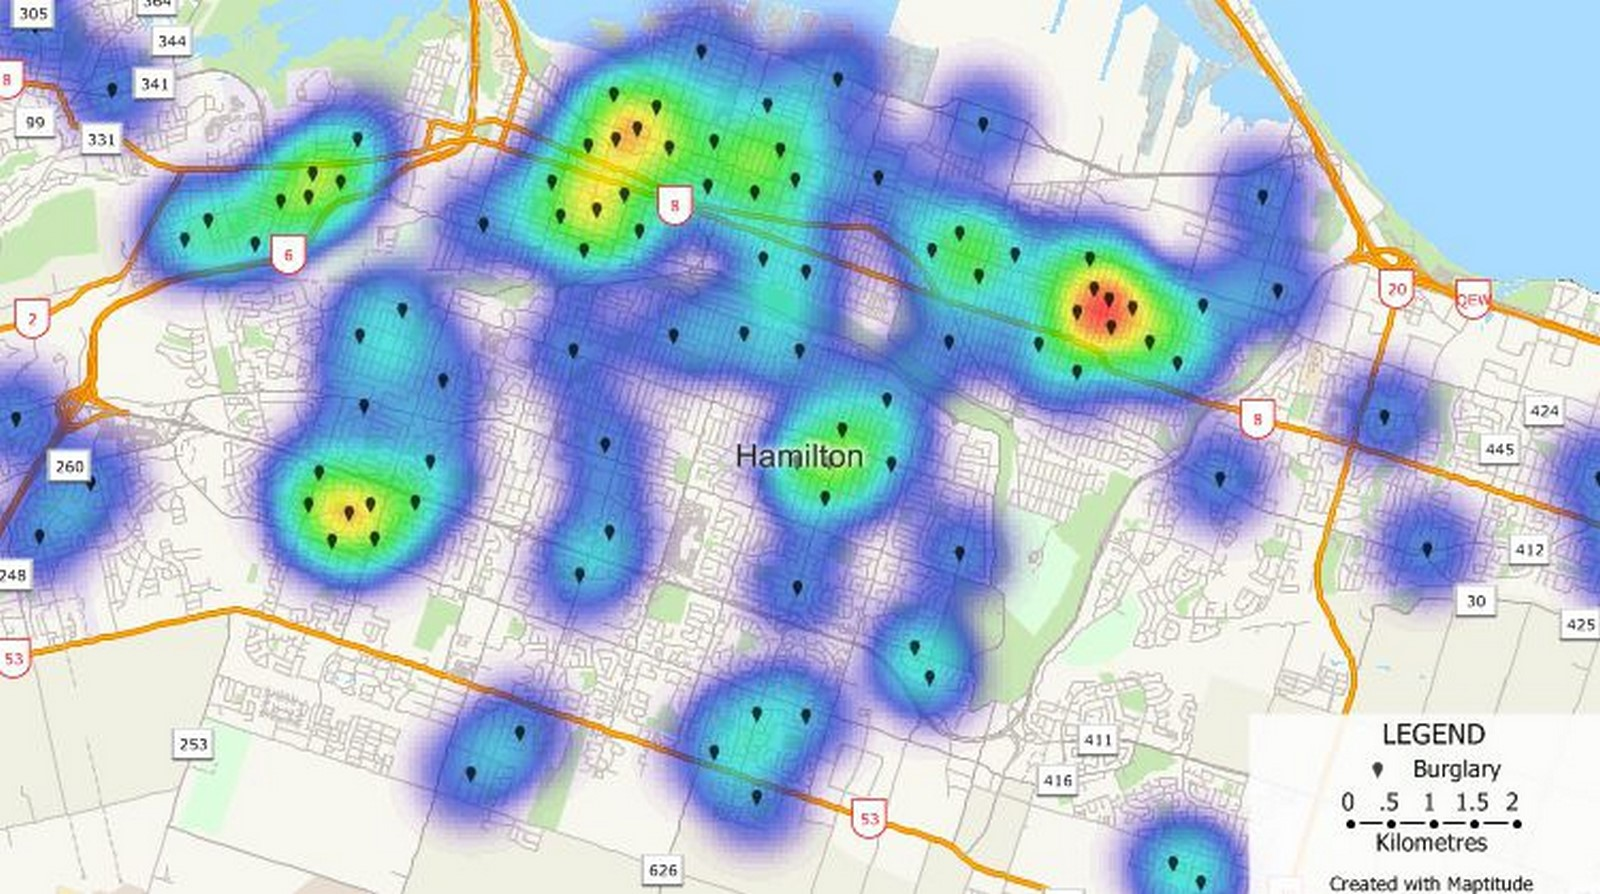 How is urban planning an essential tool in crime prevention? - Sheet4